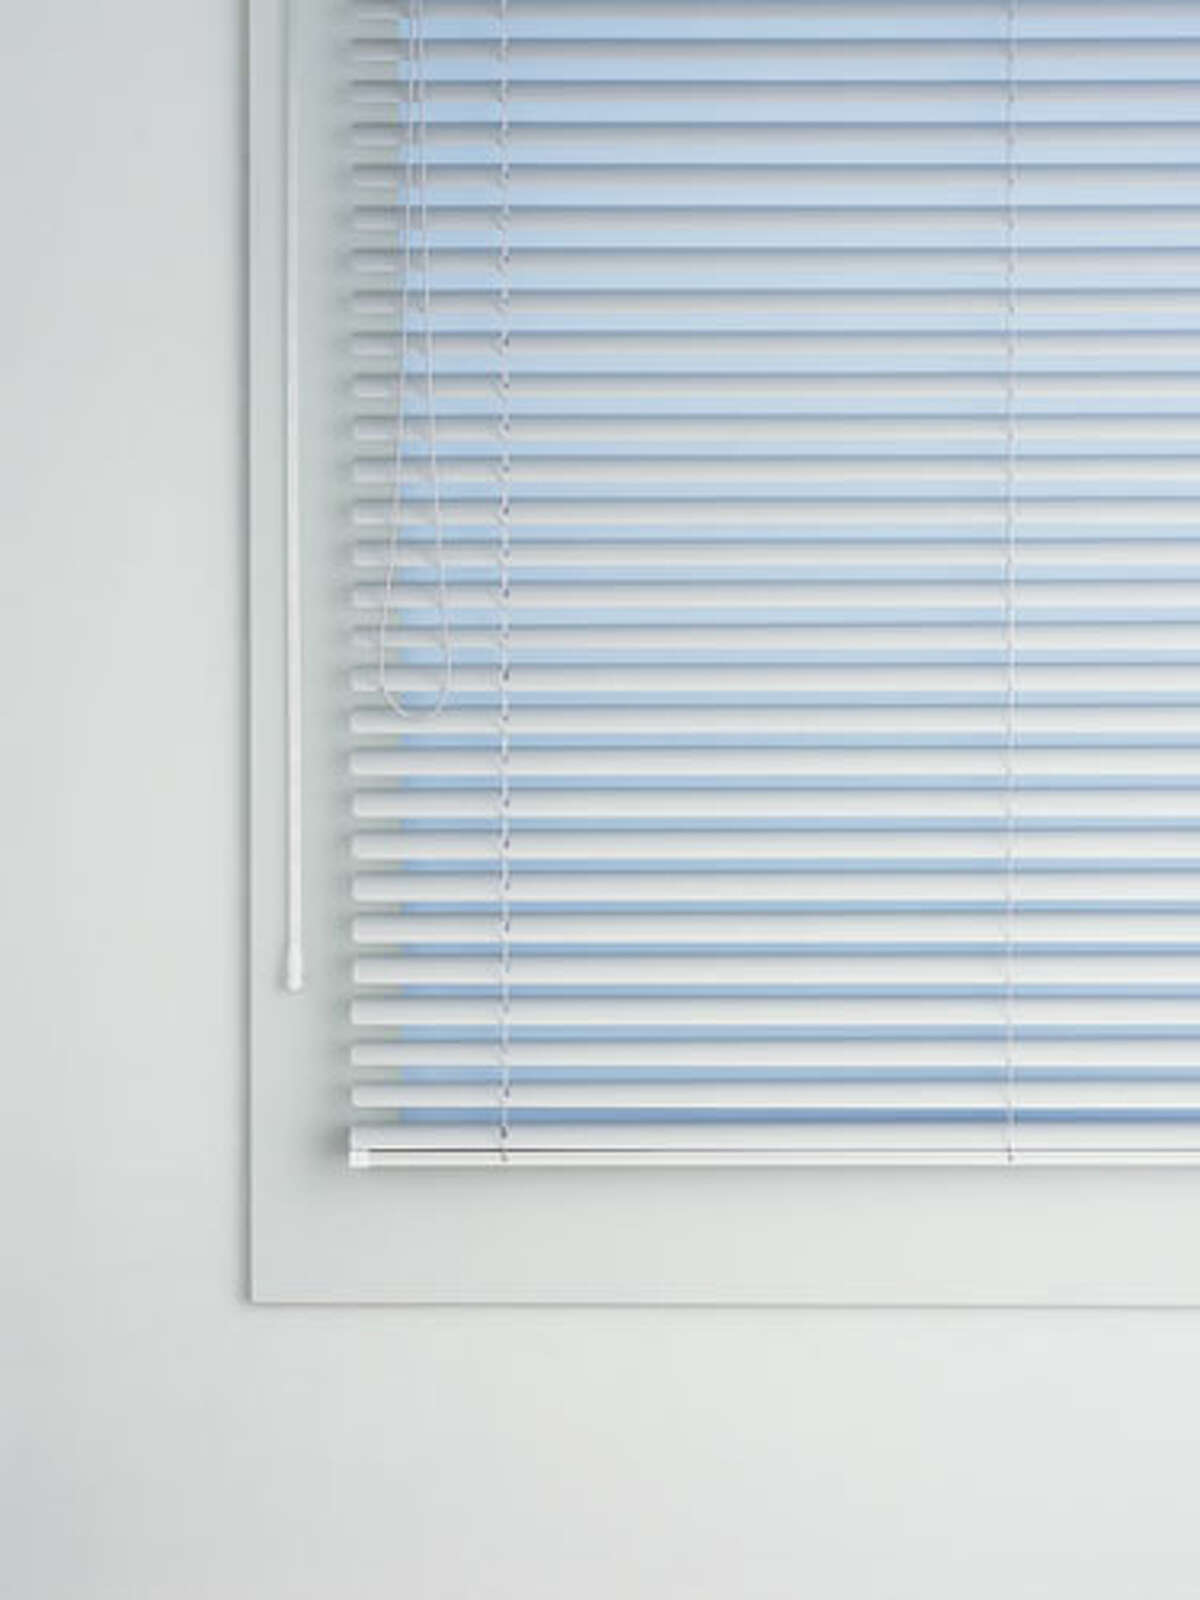 Blinds The material they're made of - metal, wood, or fabric - determines how you dust them. For metal blinds, wipe with a sock lightly dampened with water or multi-purpose cleaner. For wood blinds follow the same procedure using only a little tap water. Do not overwet the wood and be sure to buff dry right away. For fabric blinds, go over the blinds with a dry microfiber cloth. 34 Double-Duty Home Items52 Easy Home-Organizing Tips10 Biggest Organizing MistakesHaircuts That Take Off 10 Years10 Ways to Boost Your Sexual Confidence